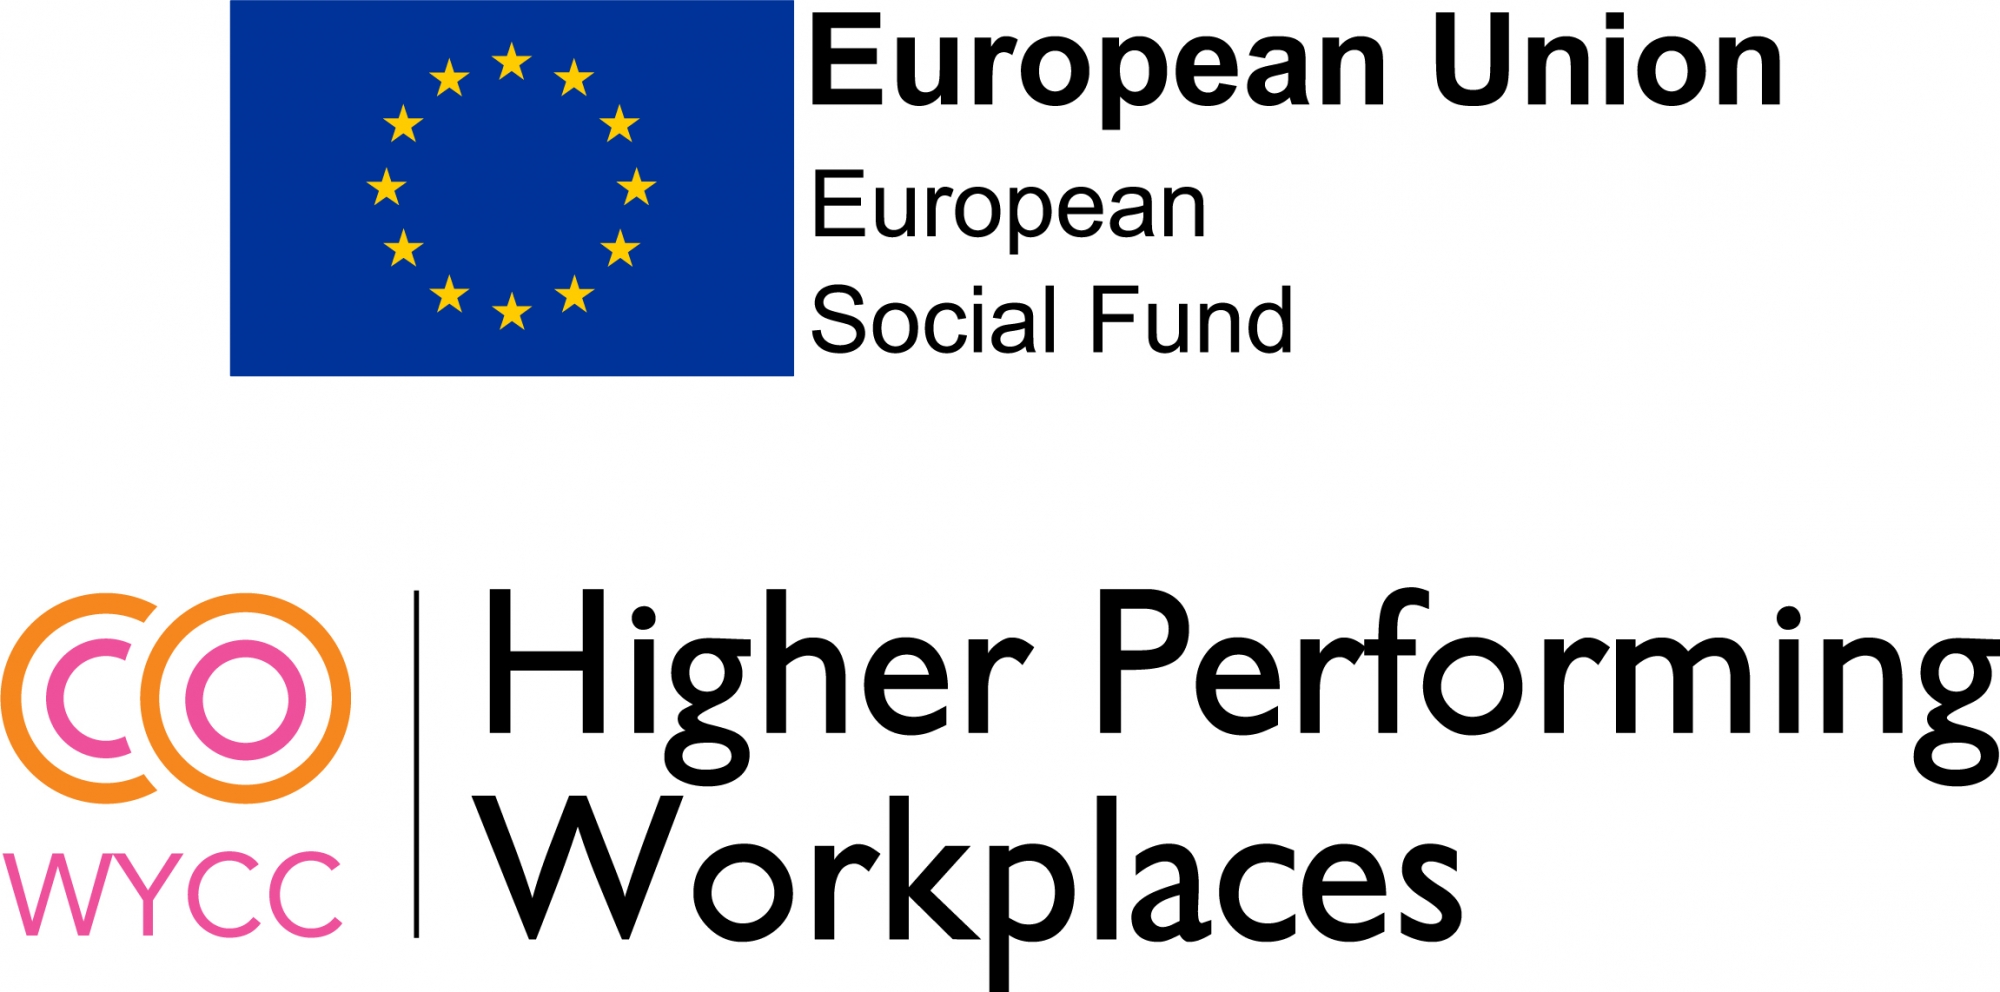 Higher Performing Workplaces and European Social Fund Logos